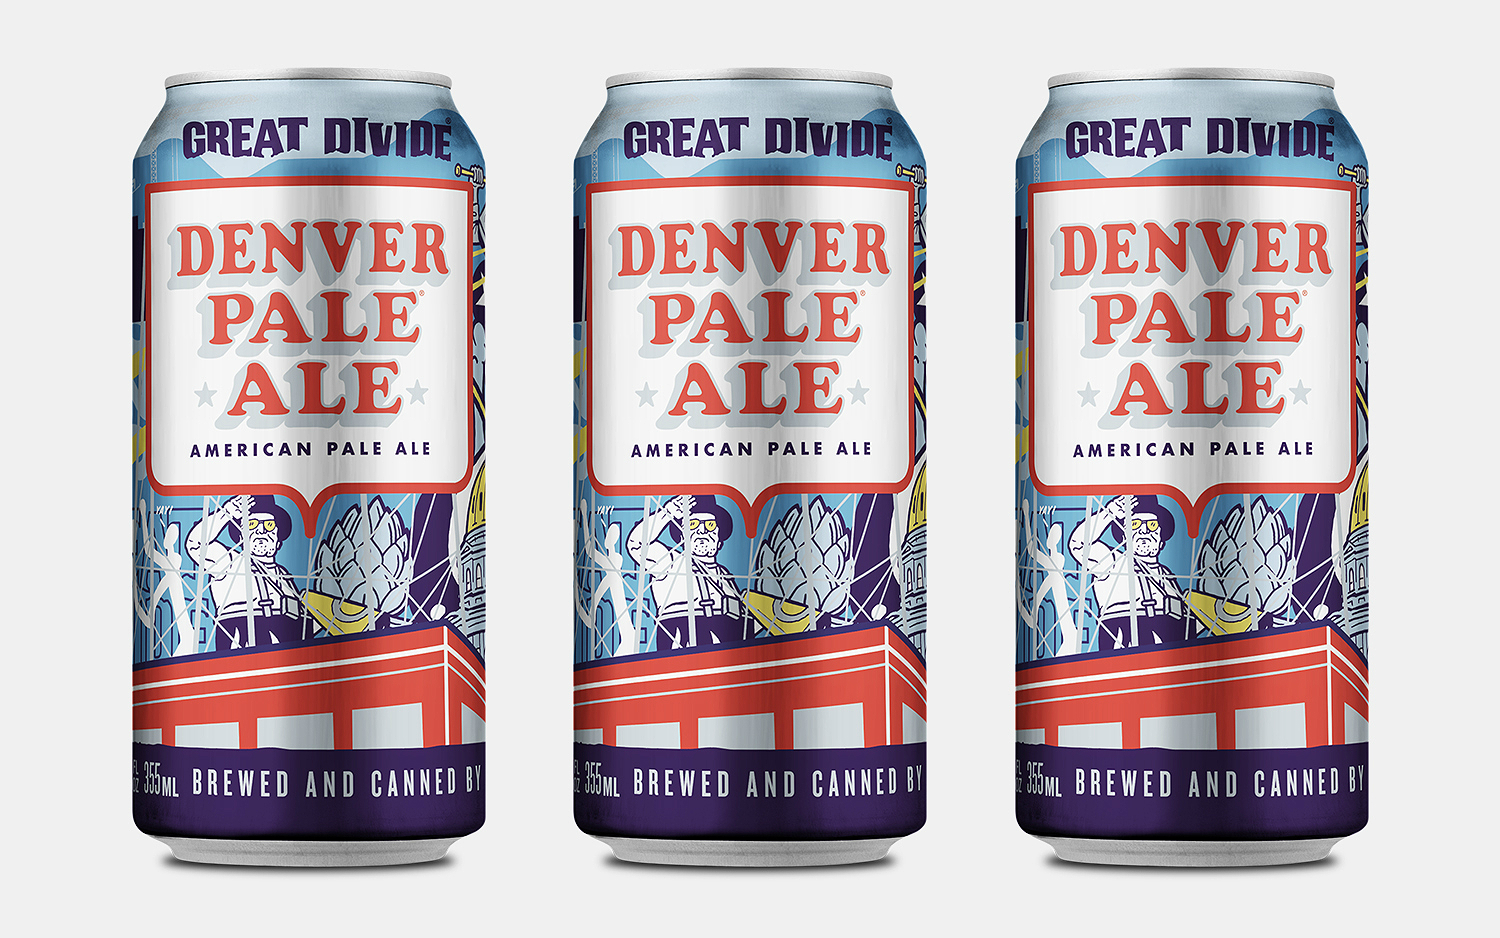 Great Divide Denver Pale Ale